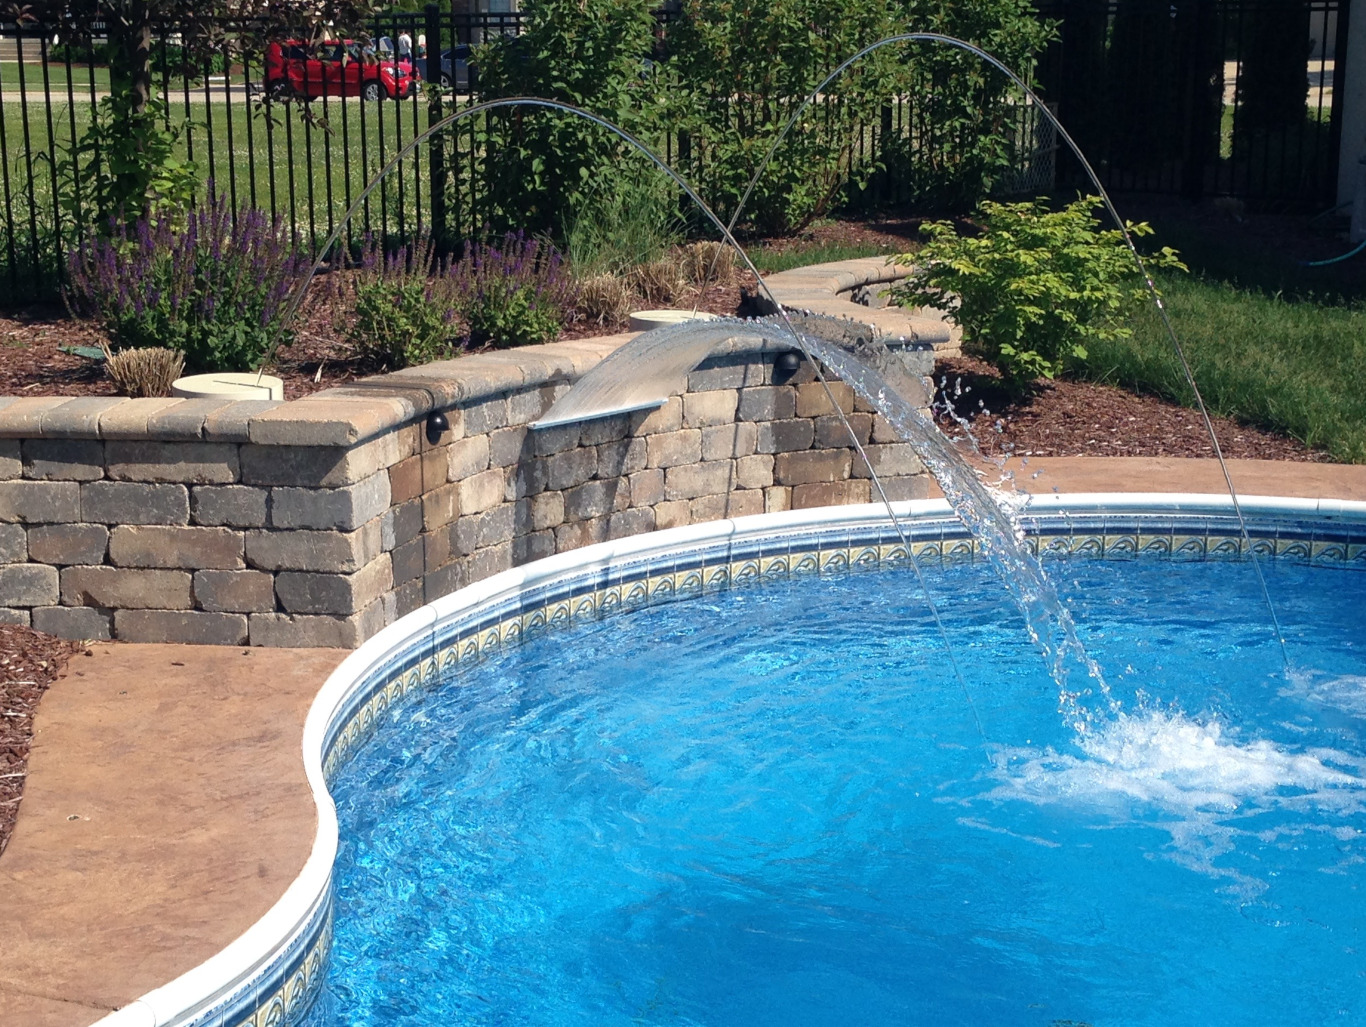 Swimming pool waterfalls swimming pool water features - Swimming pool swimming pool swimming pool ...